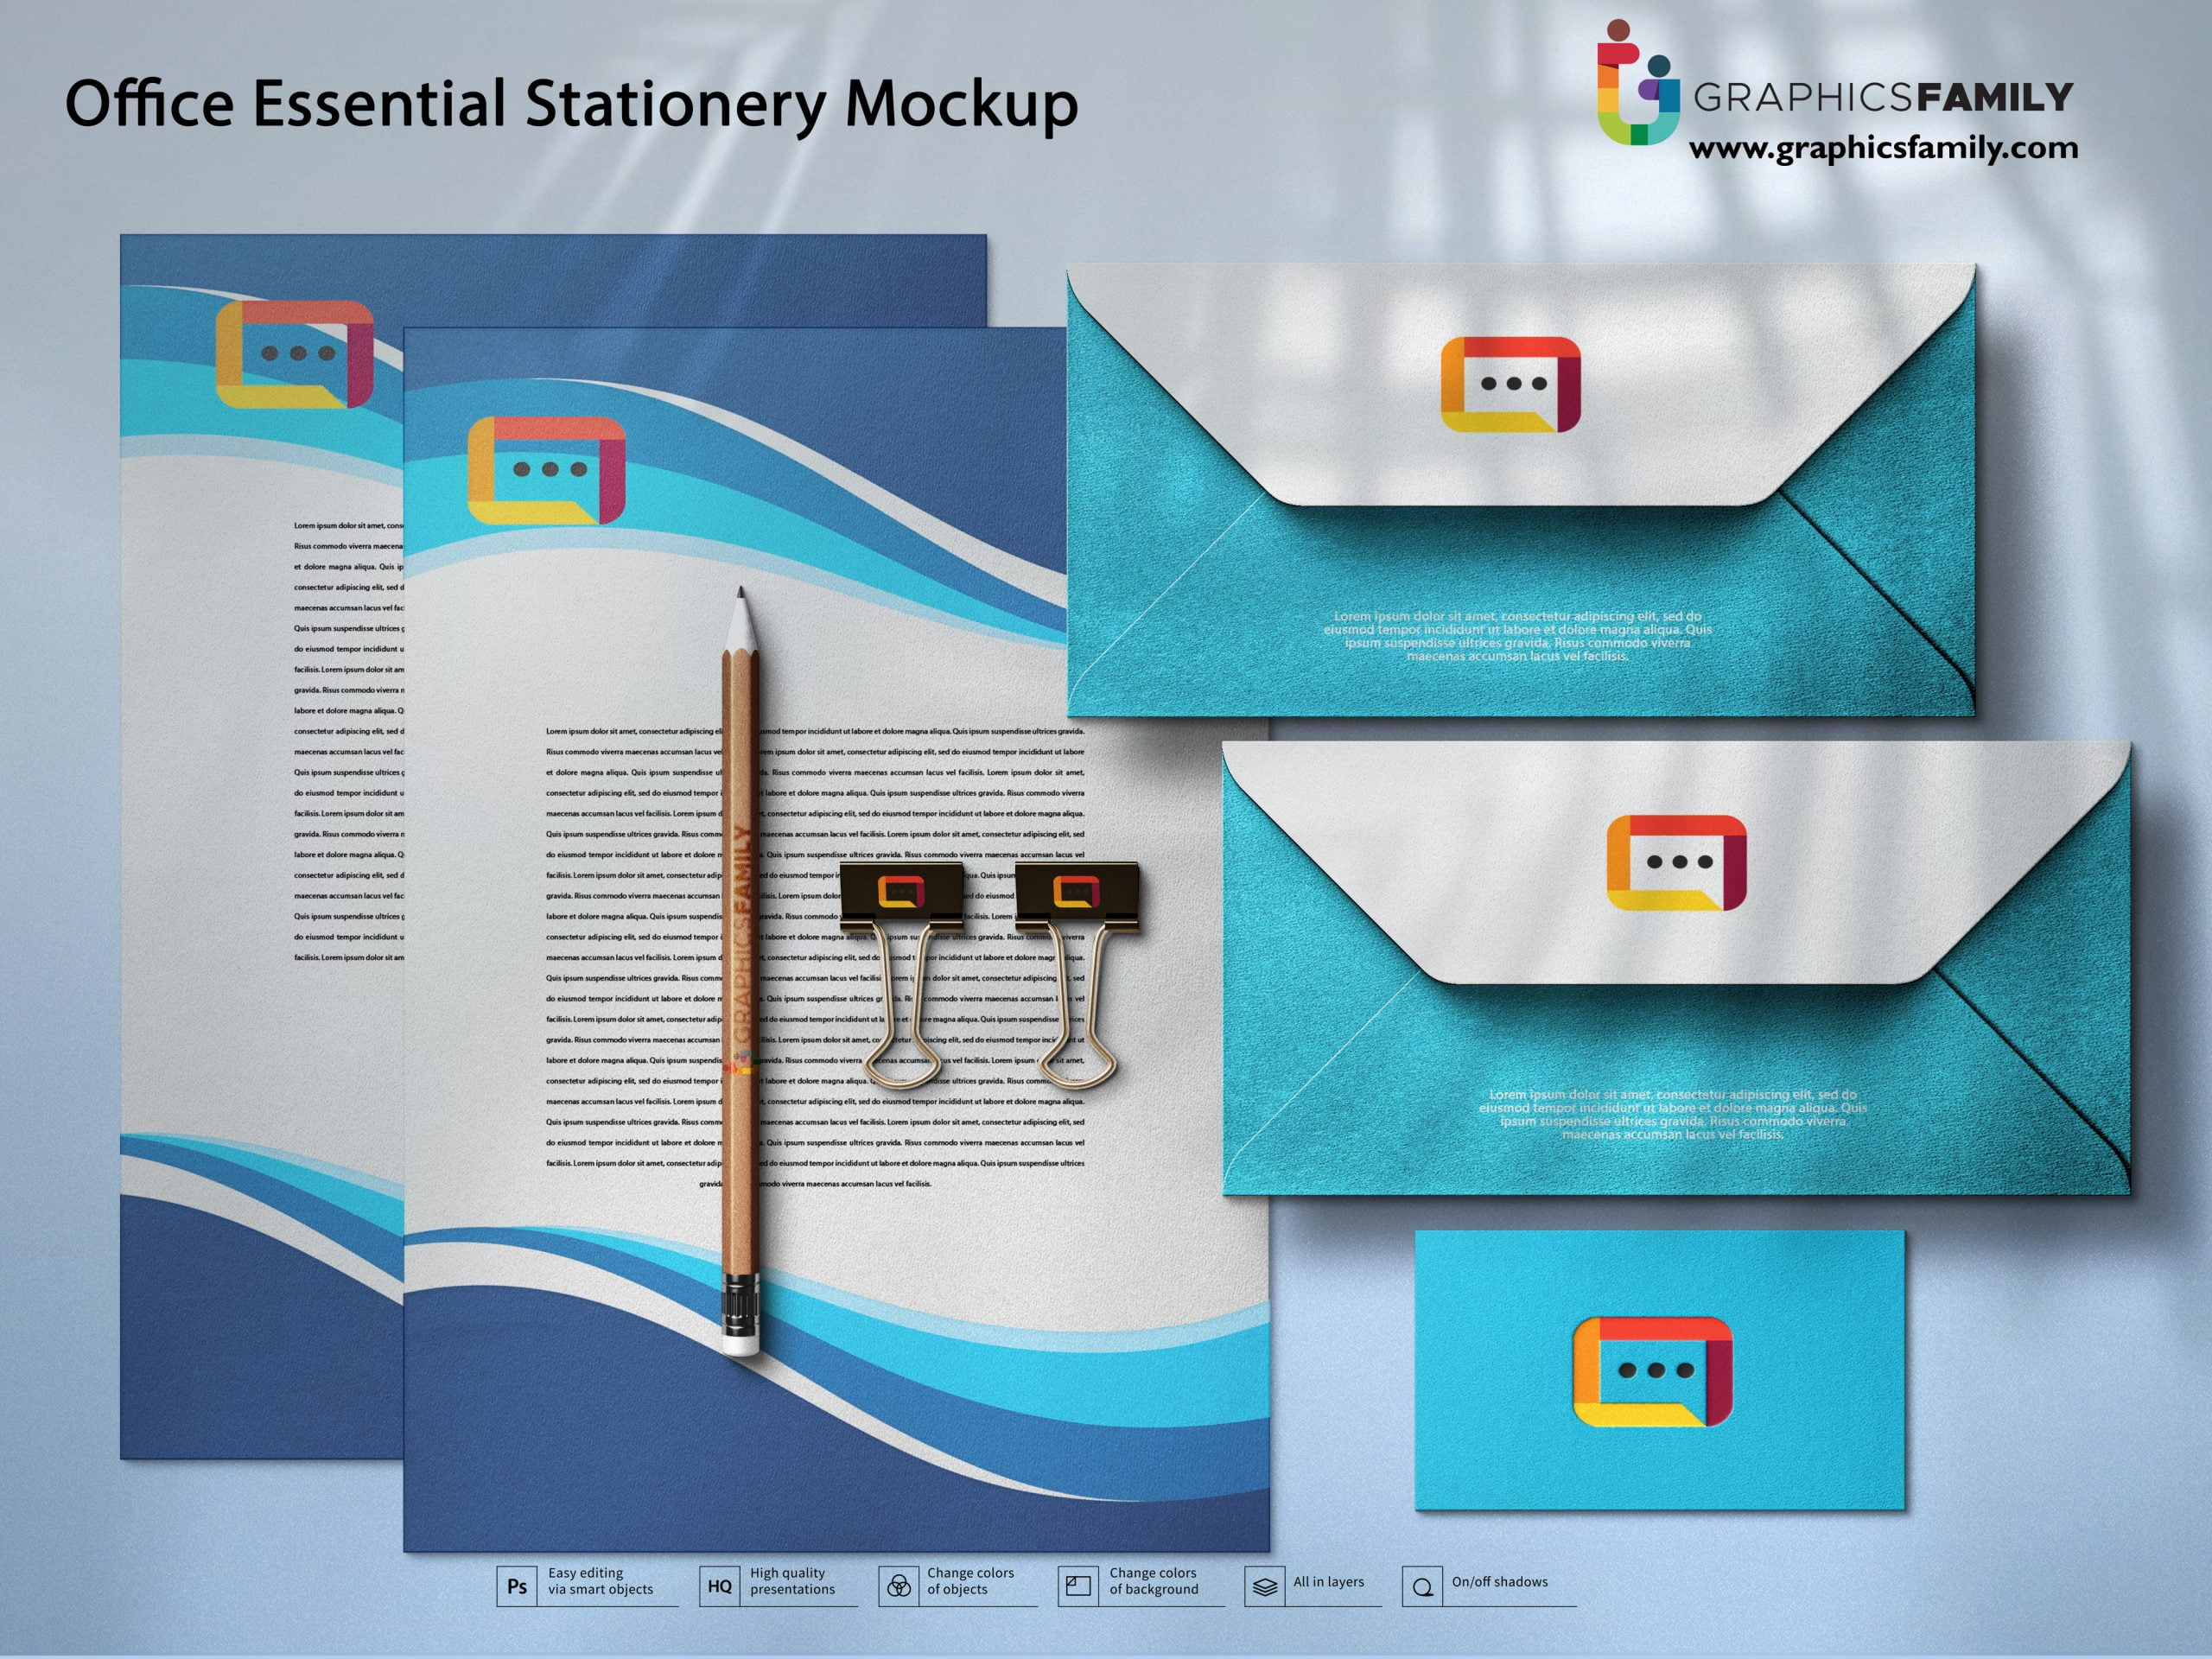 Office Essential Stationery Mockup Free PSD Download